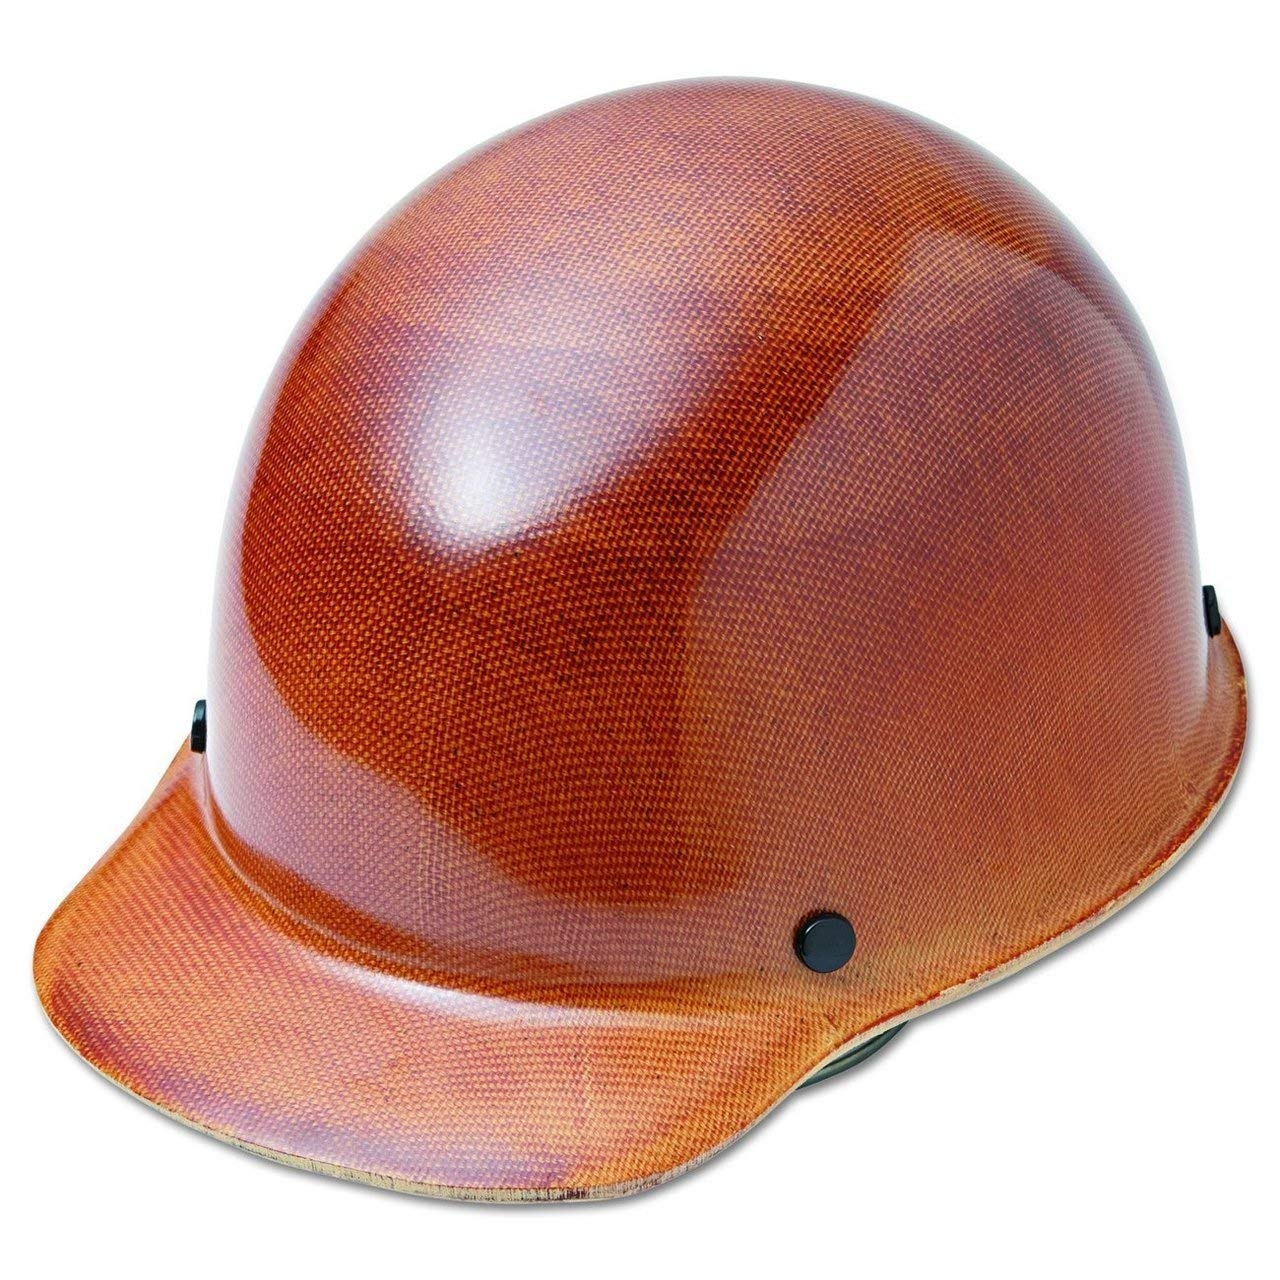 MSA 475395 Skull Gard Hard Hat for Elevated Temperatures, 11'' x 8'' x 4'' 5, Brown, 11'' x 8'' x 4'' 5 (3 Pack)